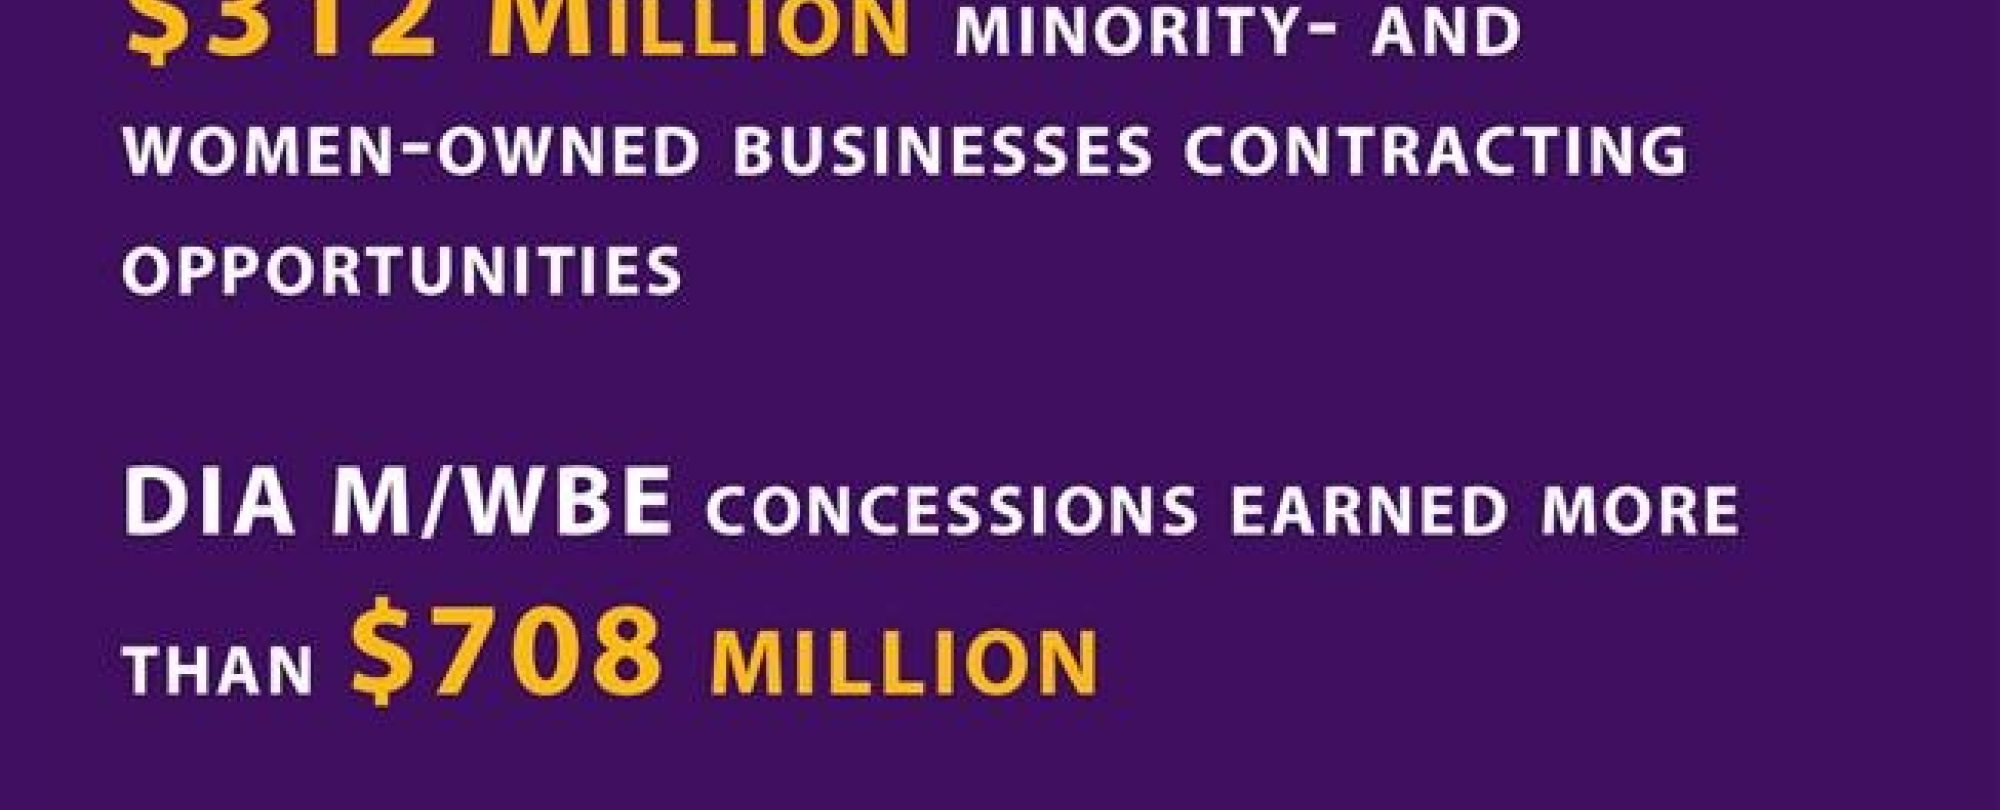 $312 million minority and women-owned businesses contracting opportunities. DIA M/WBE concessions earned more than $708 million.